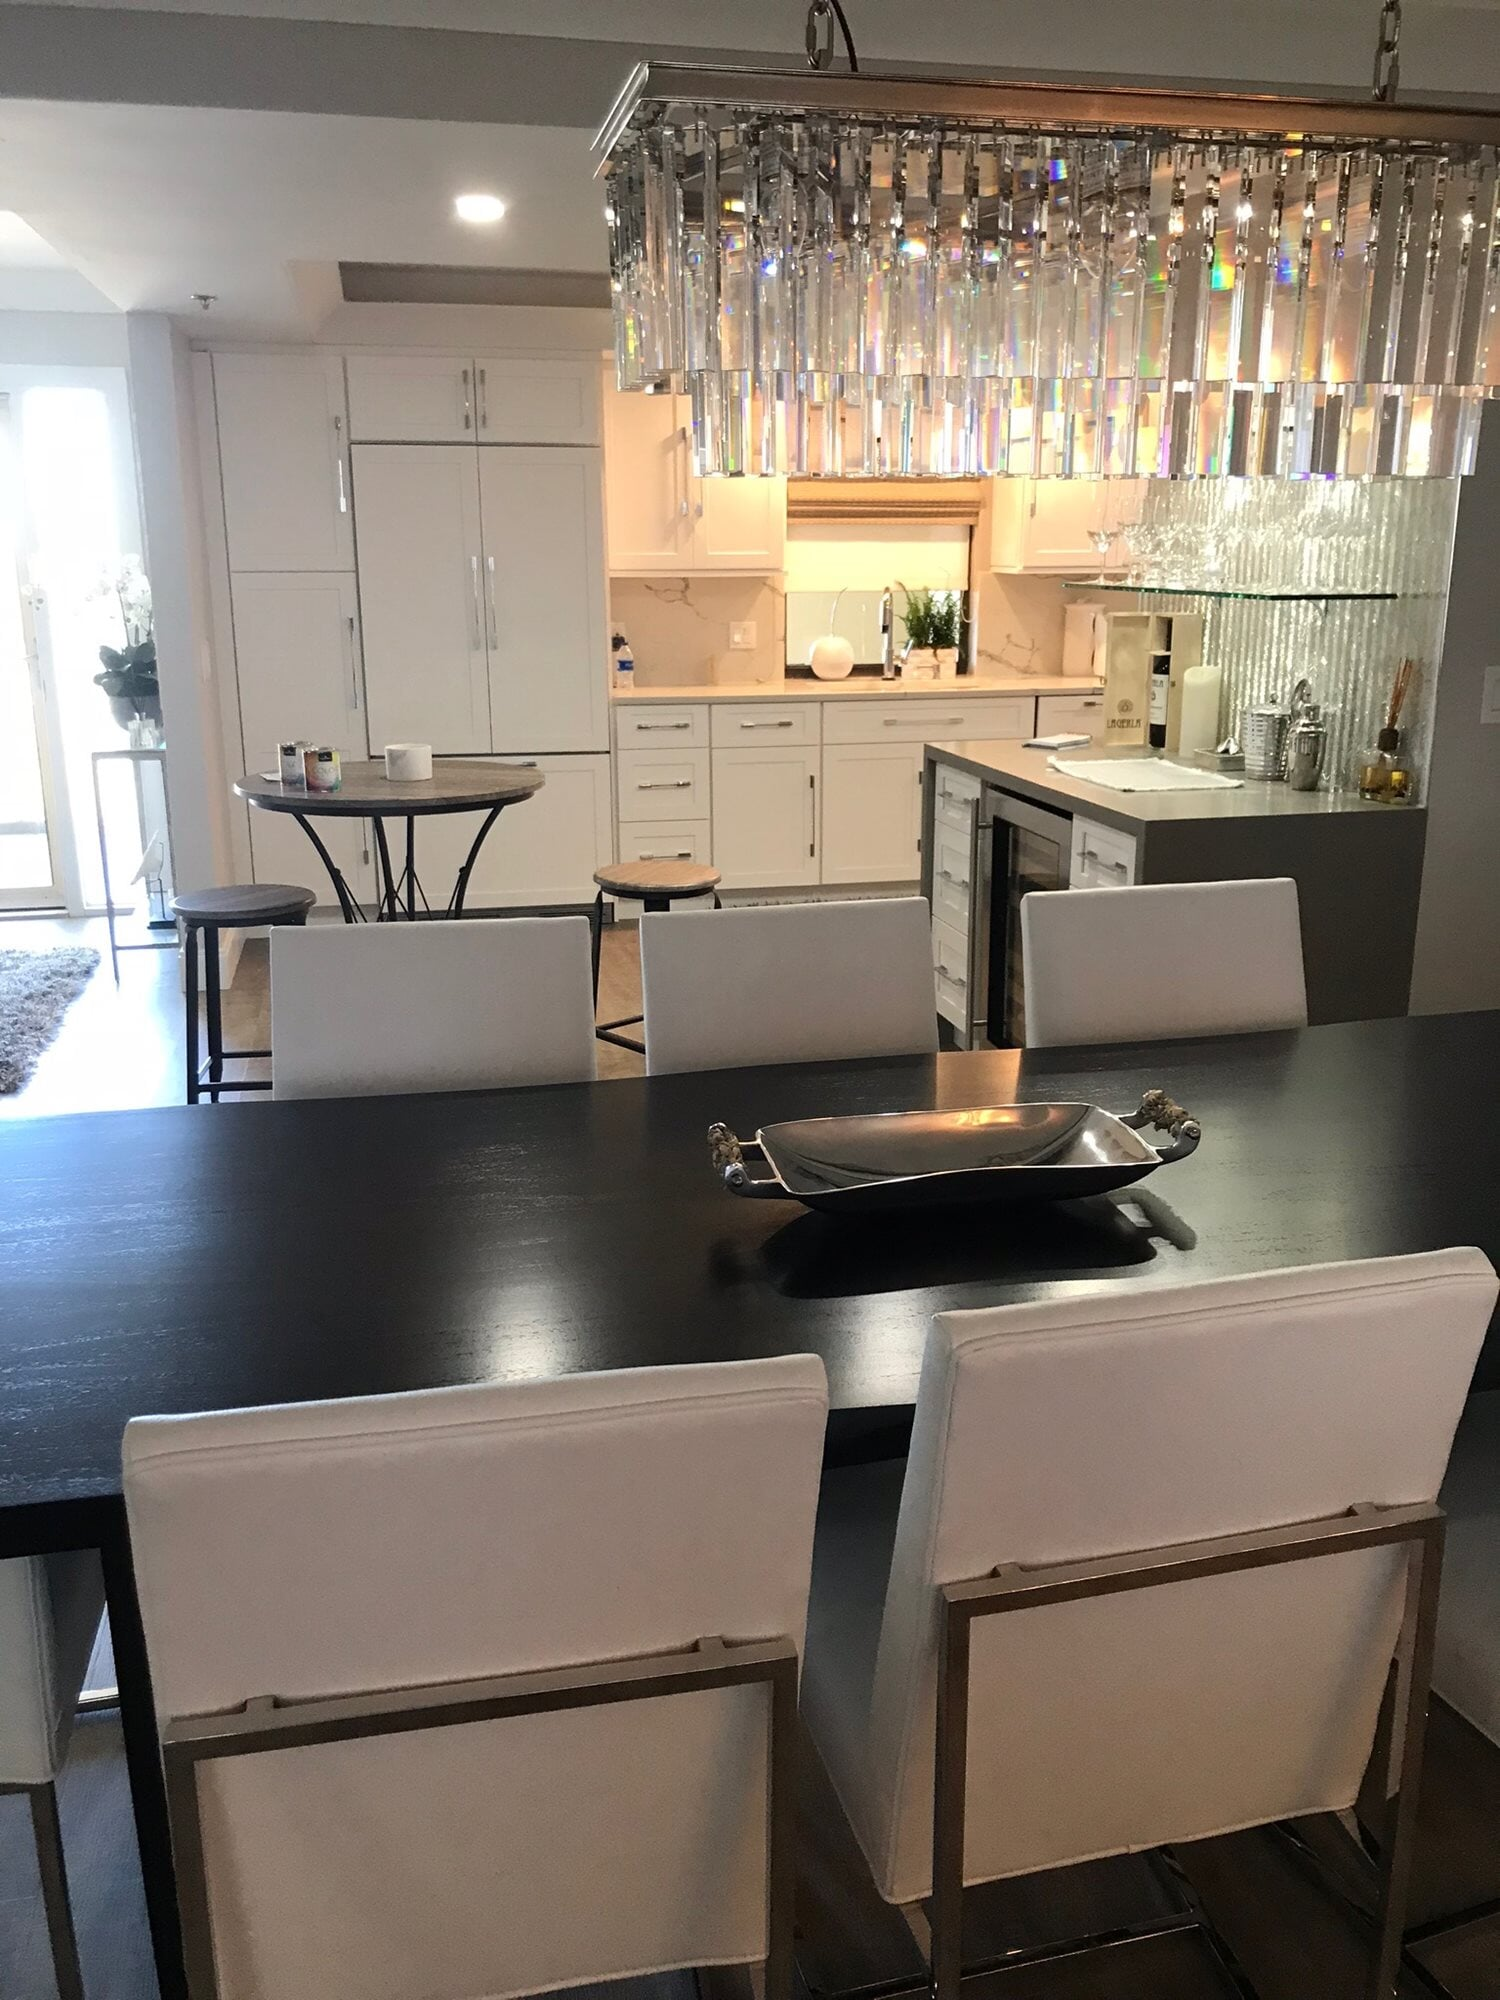 Contemporary kitchen remodeling in Jupiter, FL from Floors For You Kitchen & Bath